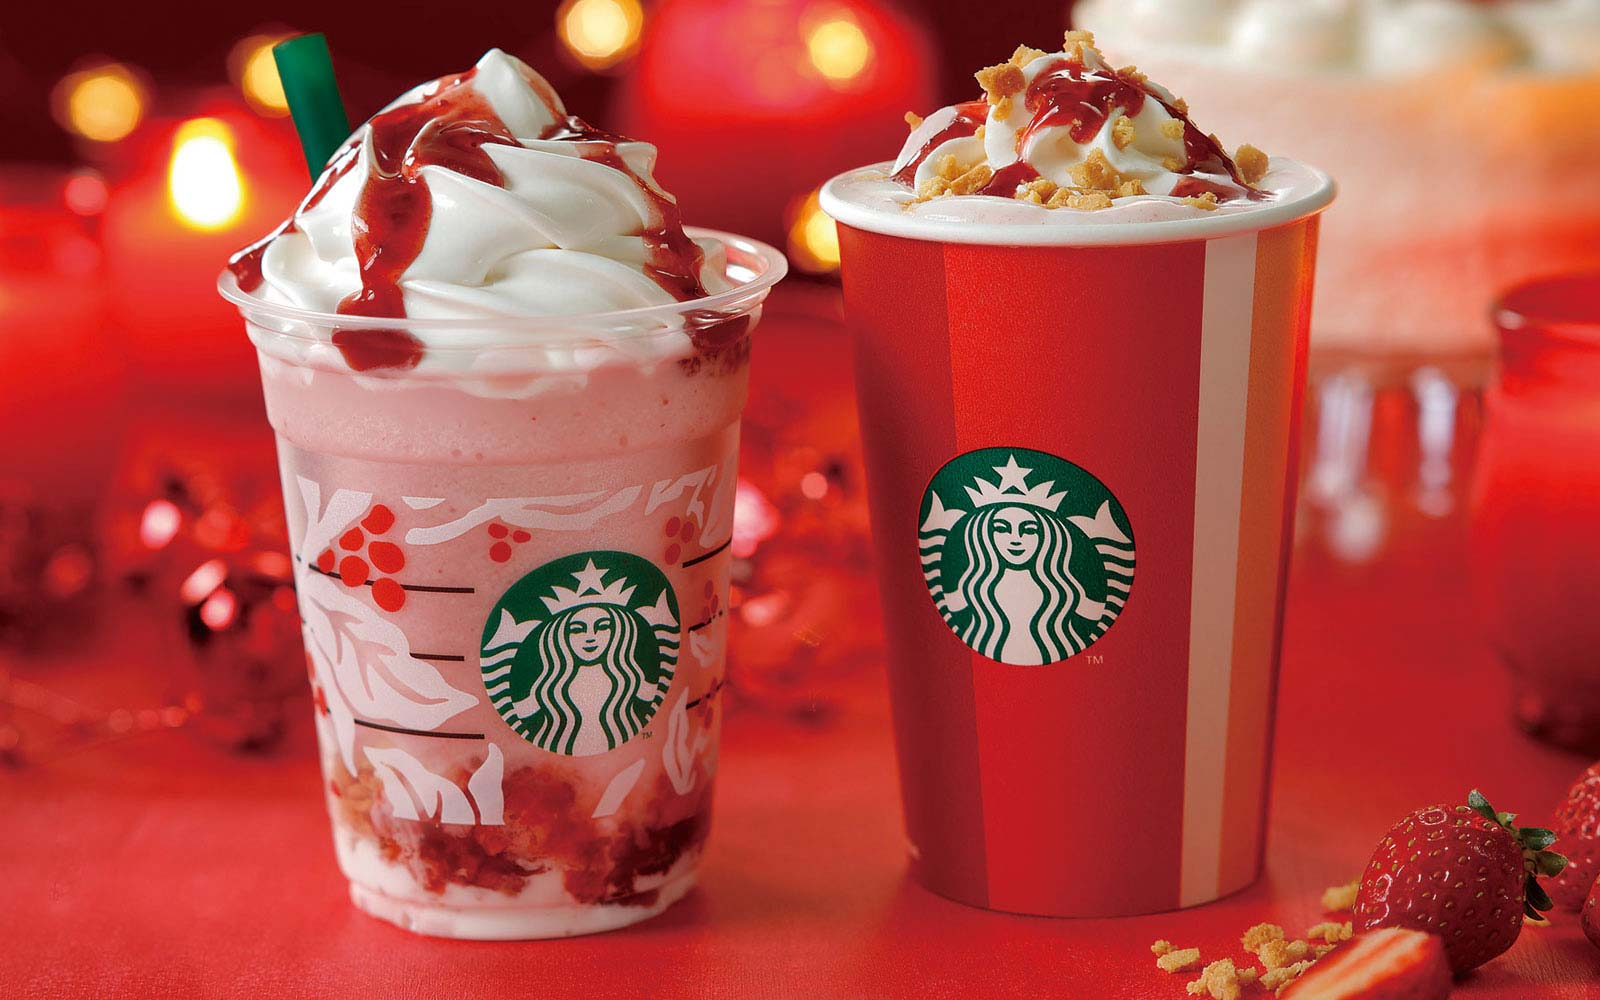 The 12 Best Starbucks Holiday Drinks From Around the World